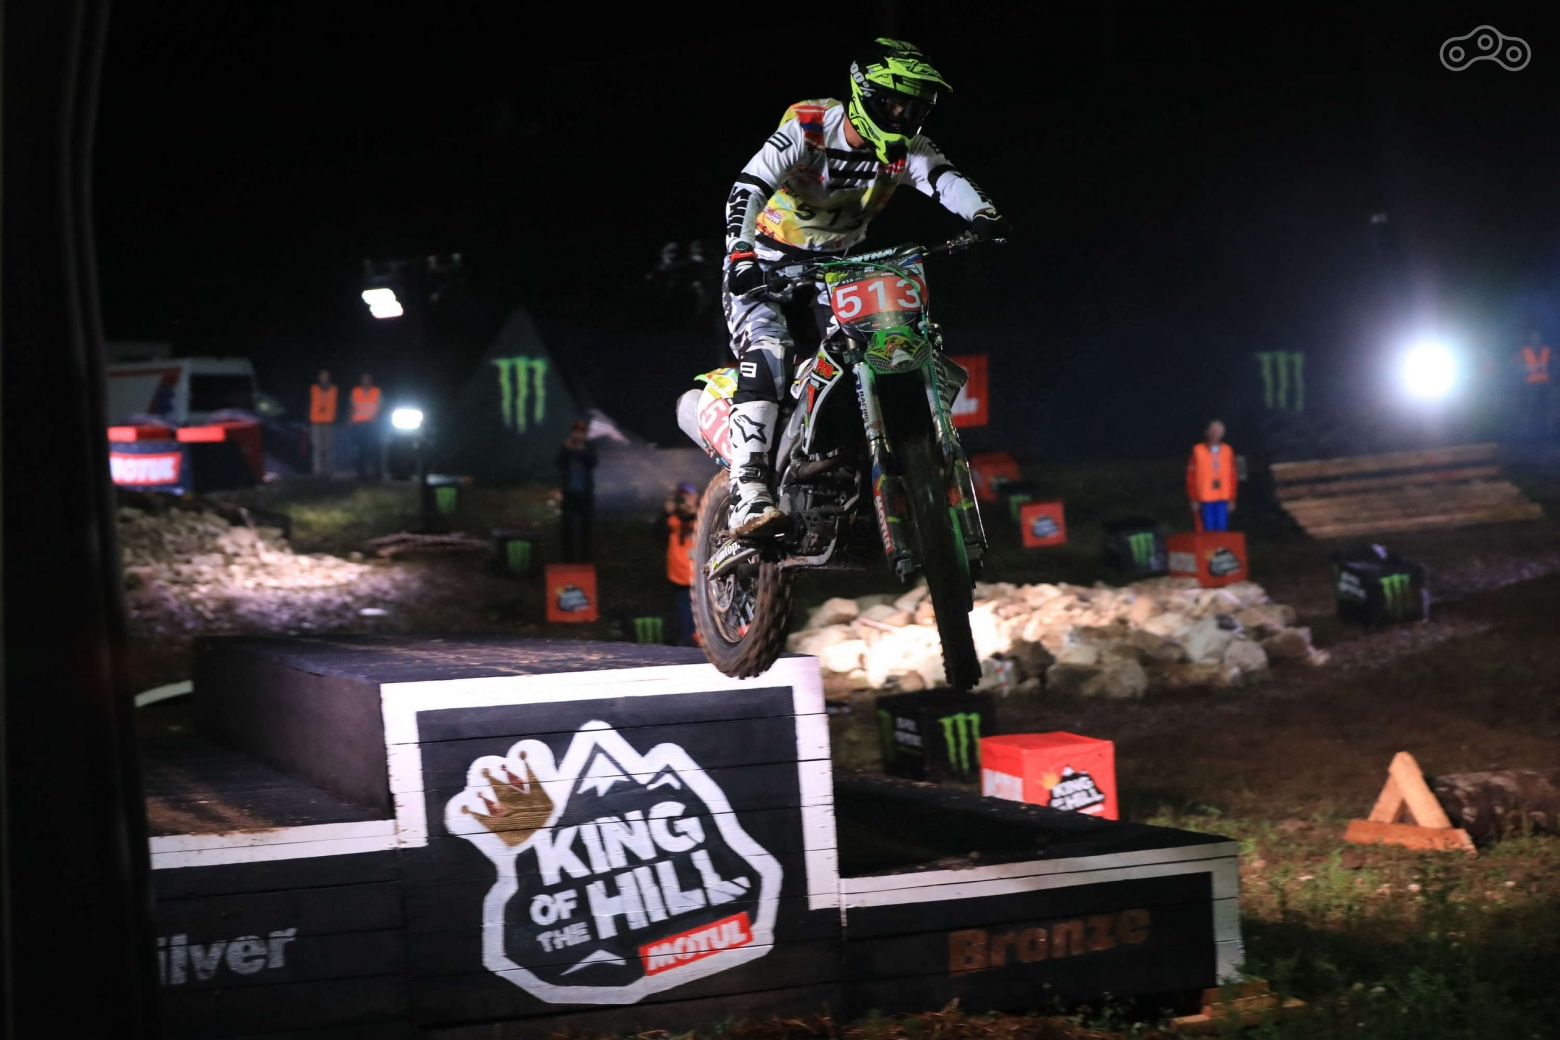 Motul King of the Hill 2018